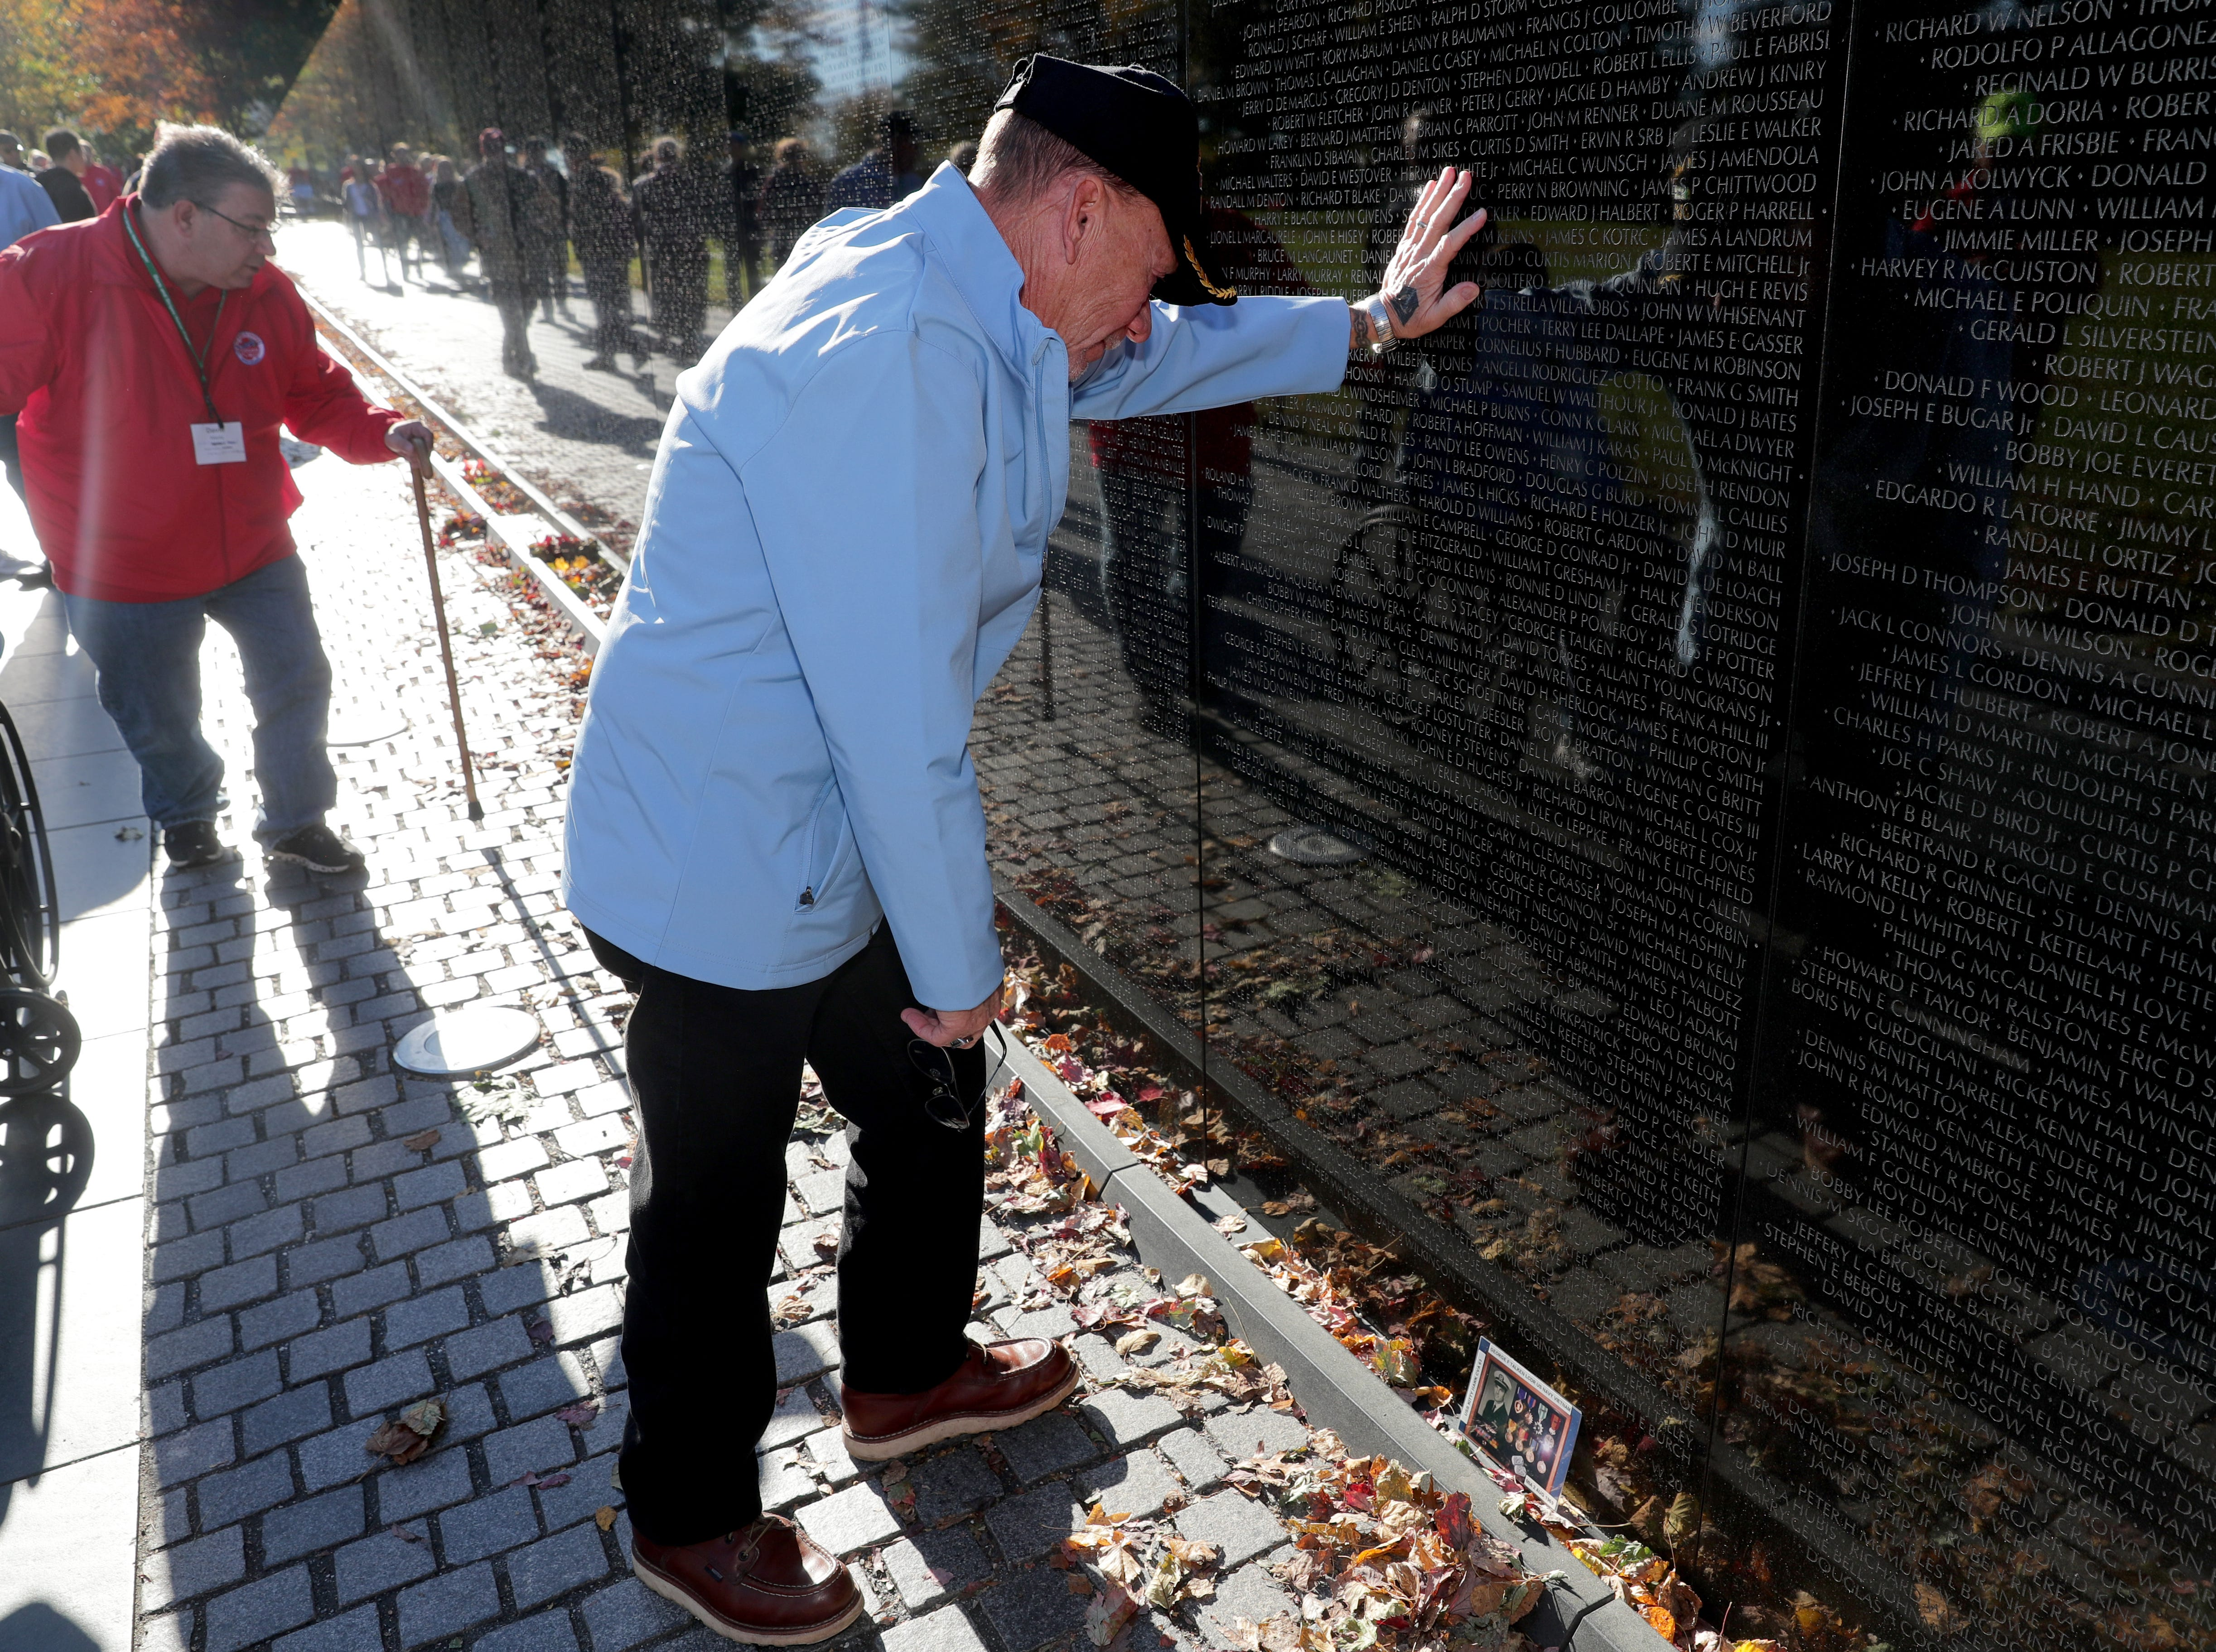 Vietnam Navy veteran Ranson Blanchard, of Elkhorn takes a moment at the Vietnam Veterans Memorial after finding his fellow Navy man's name on the wall. Following Saturday's flight, the 49th for the Honor Flight hub in southeastern Wisconsin, a total of 6,344 veterans have traveled to the nation's capital. The first flight almost exactly 10 years ago took World War II veterans to Washington, D.C.